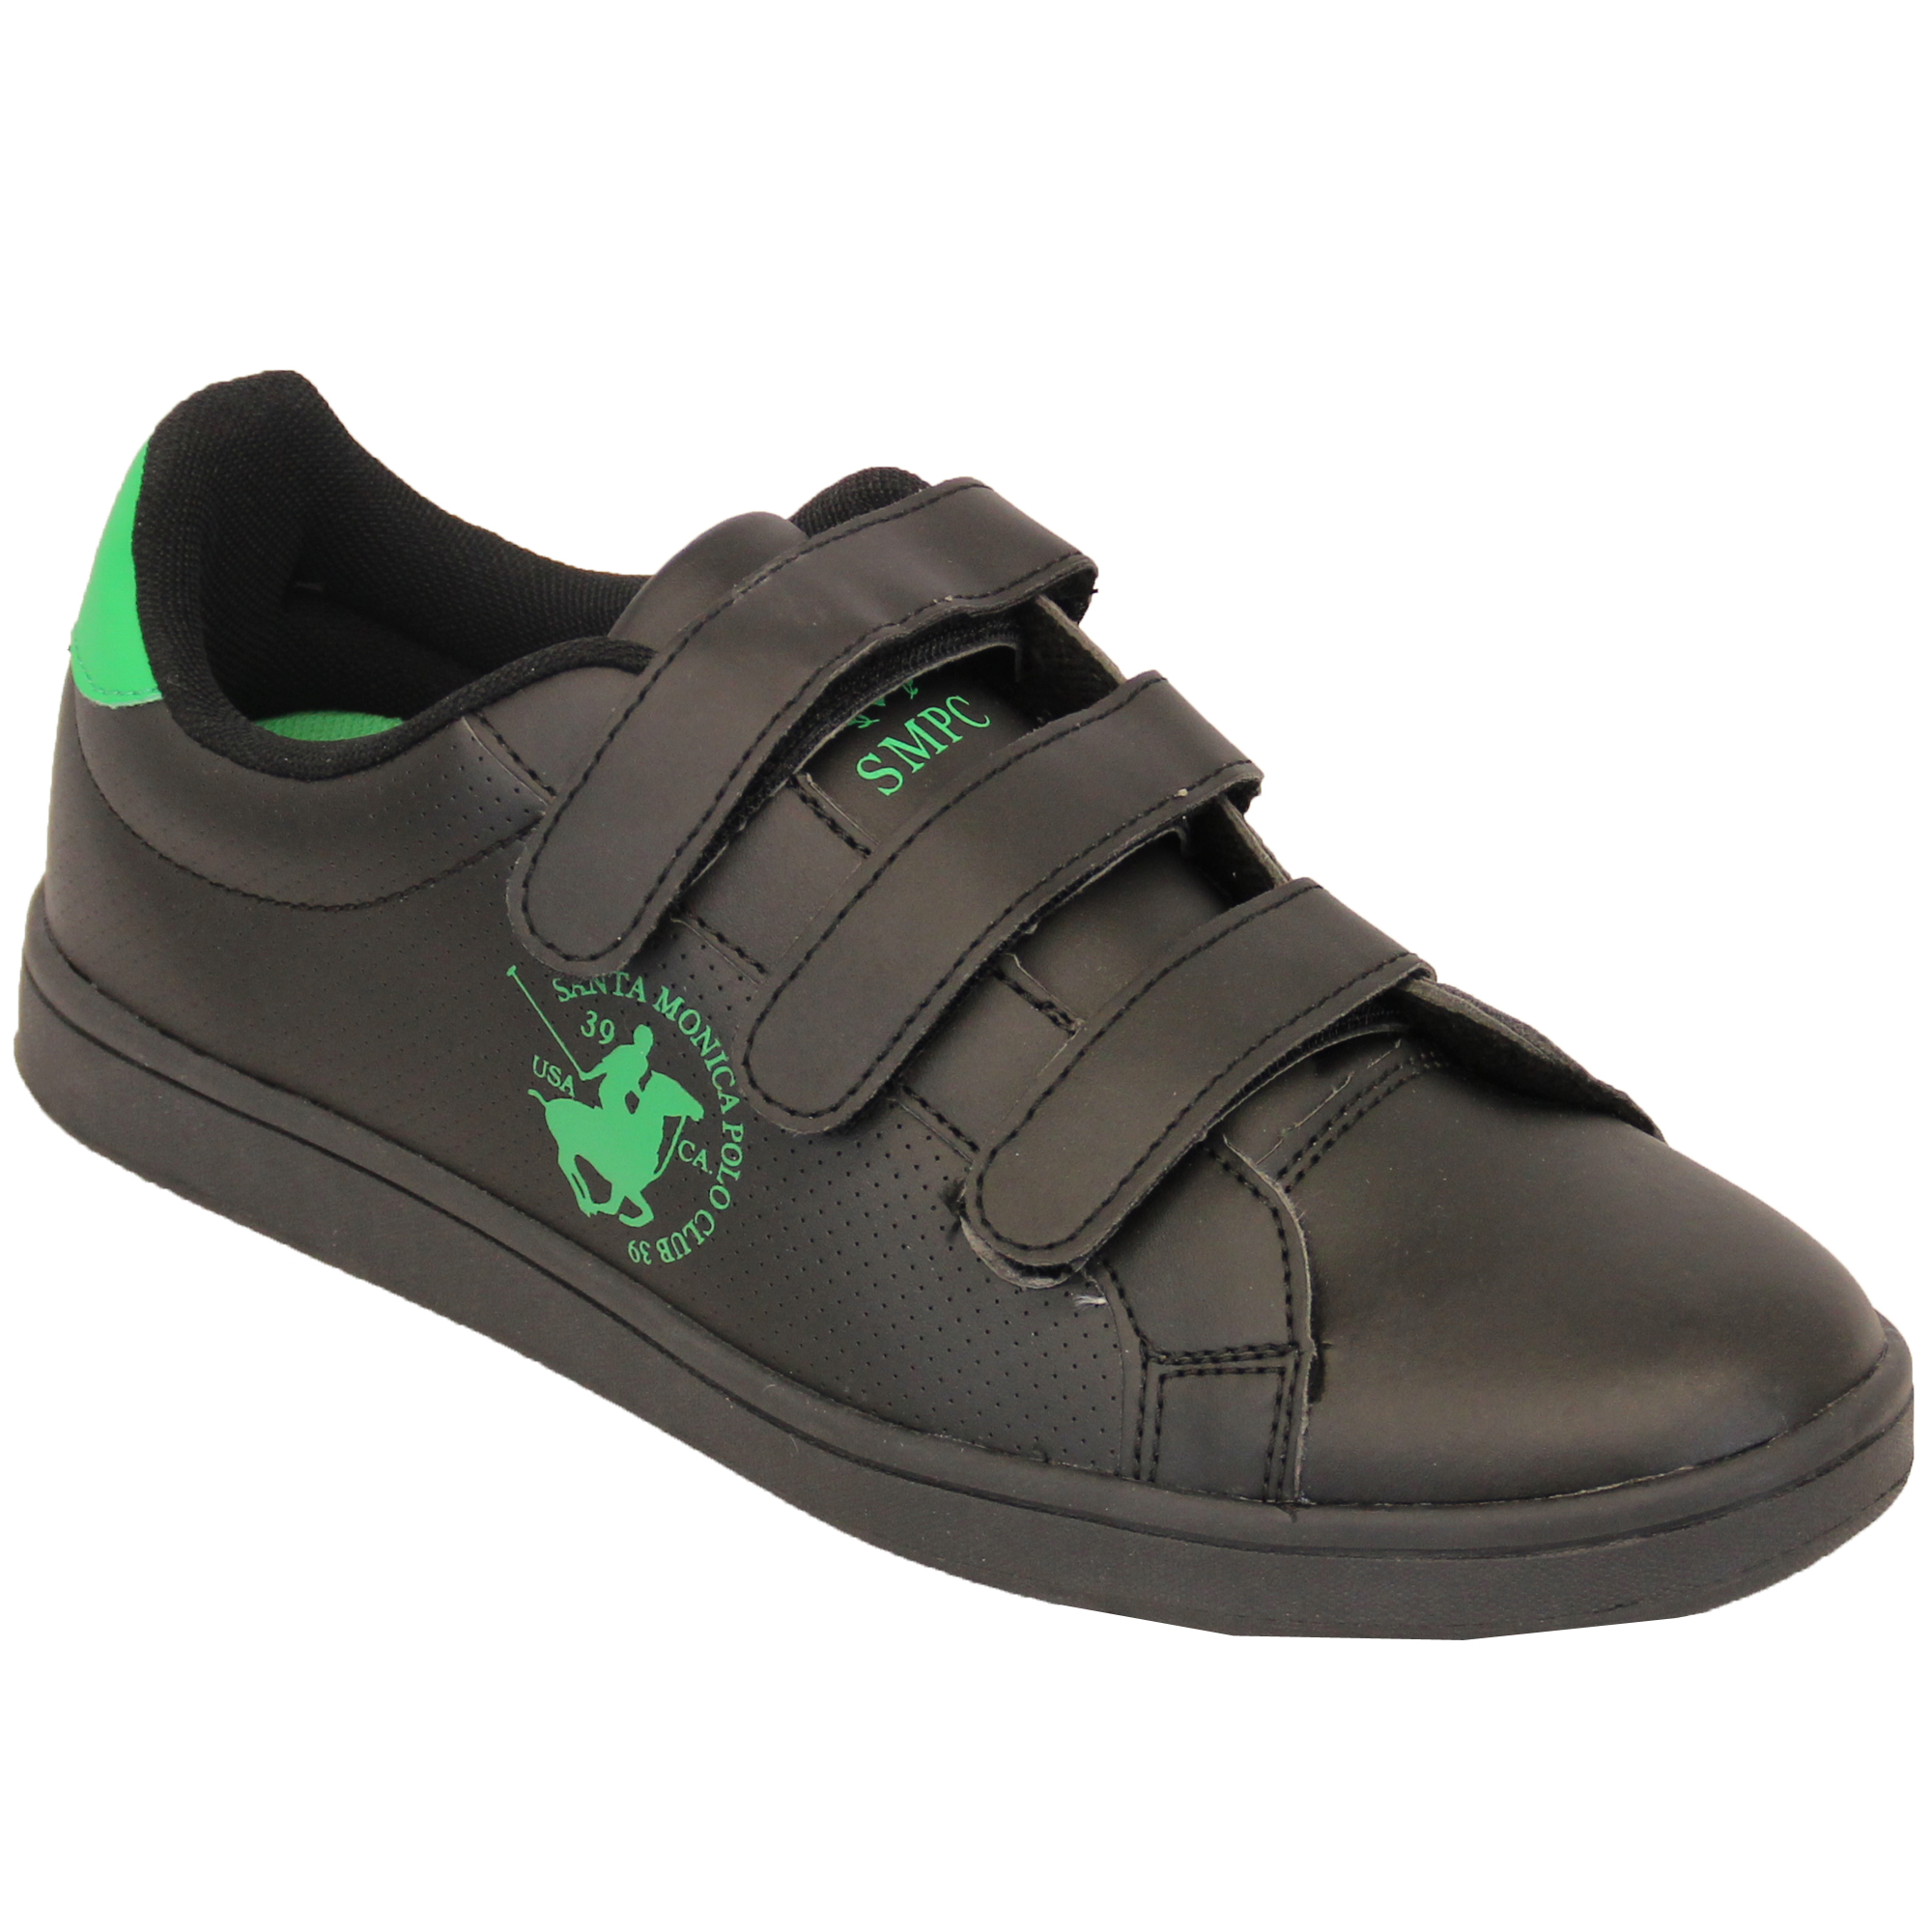 mens trainers santa polo club shoes lace up velcro